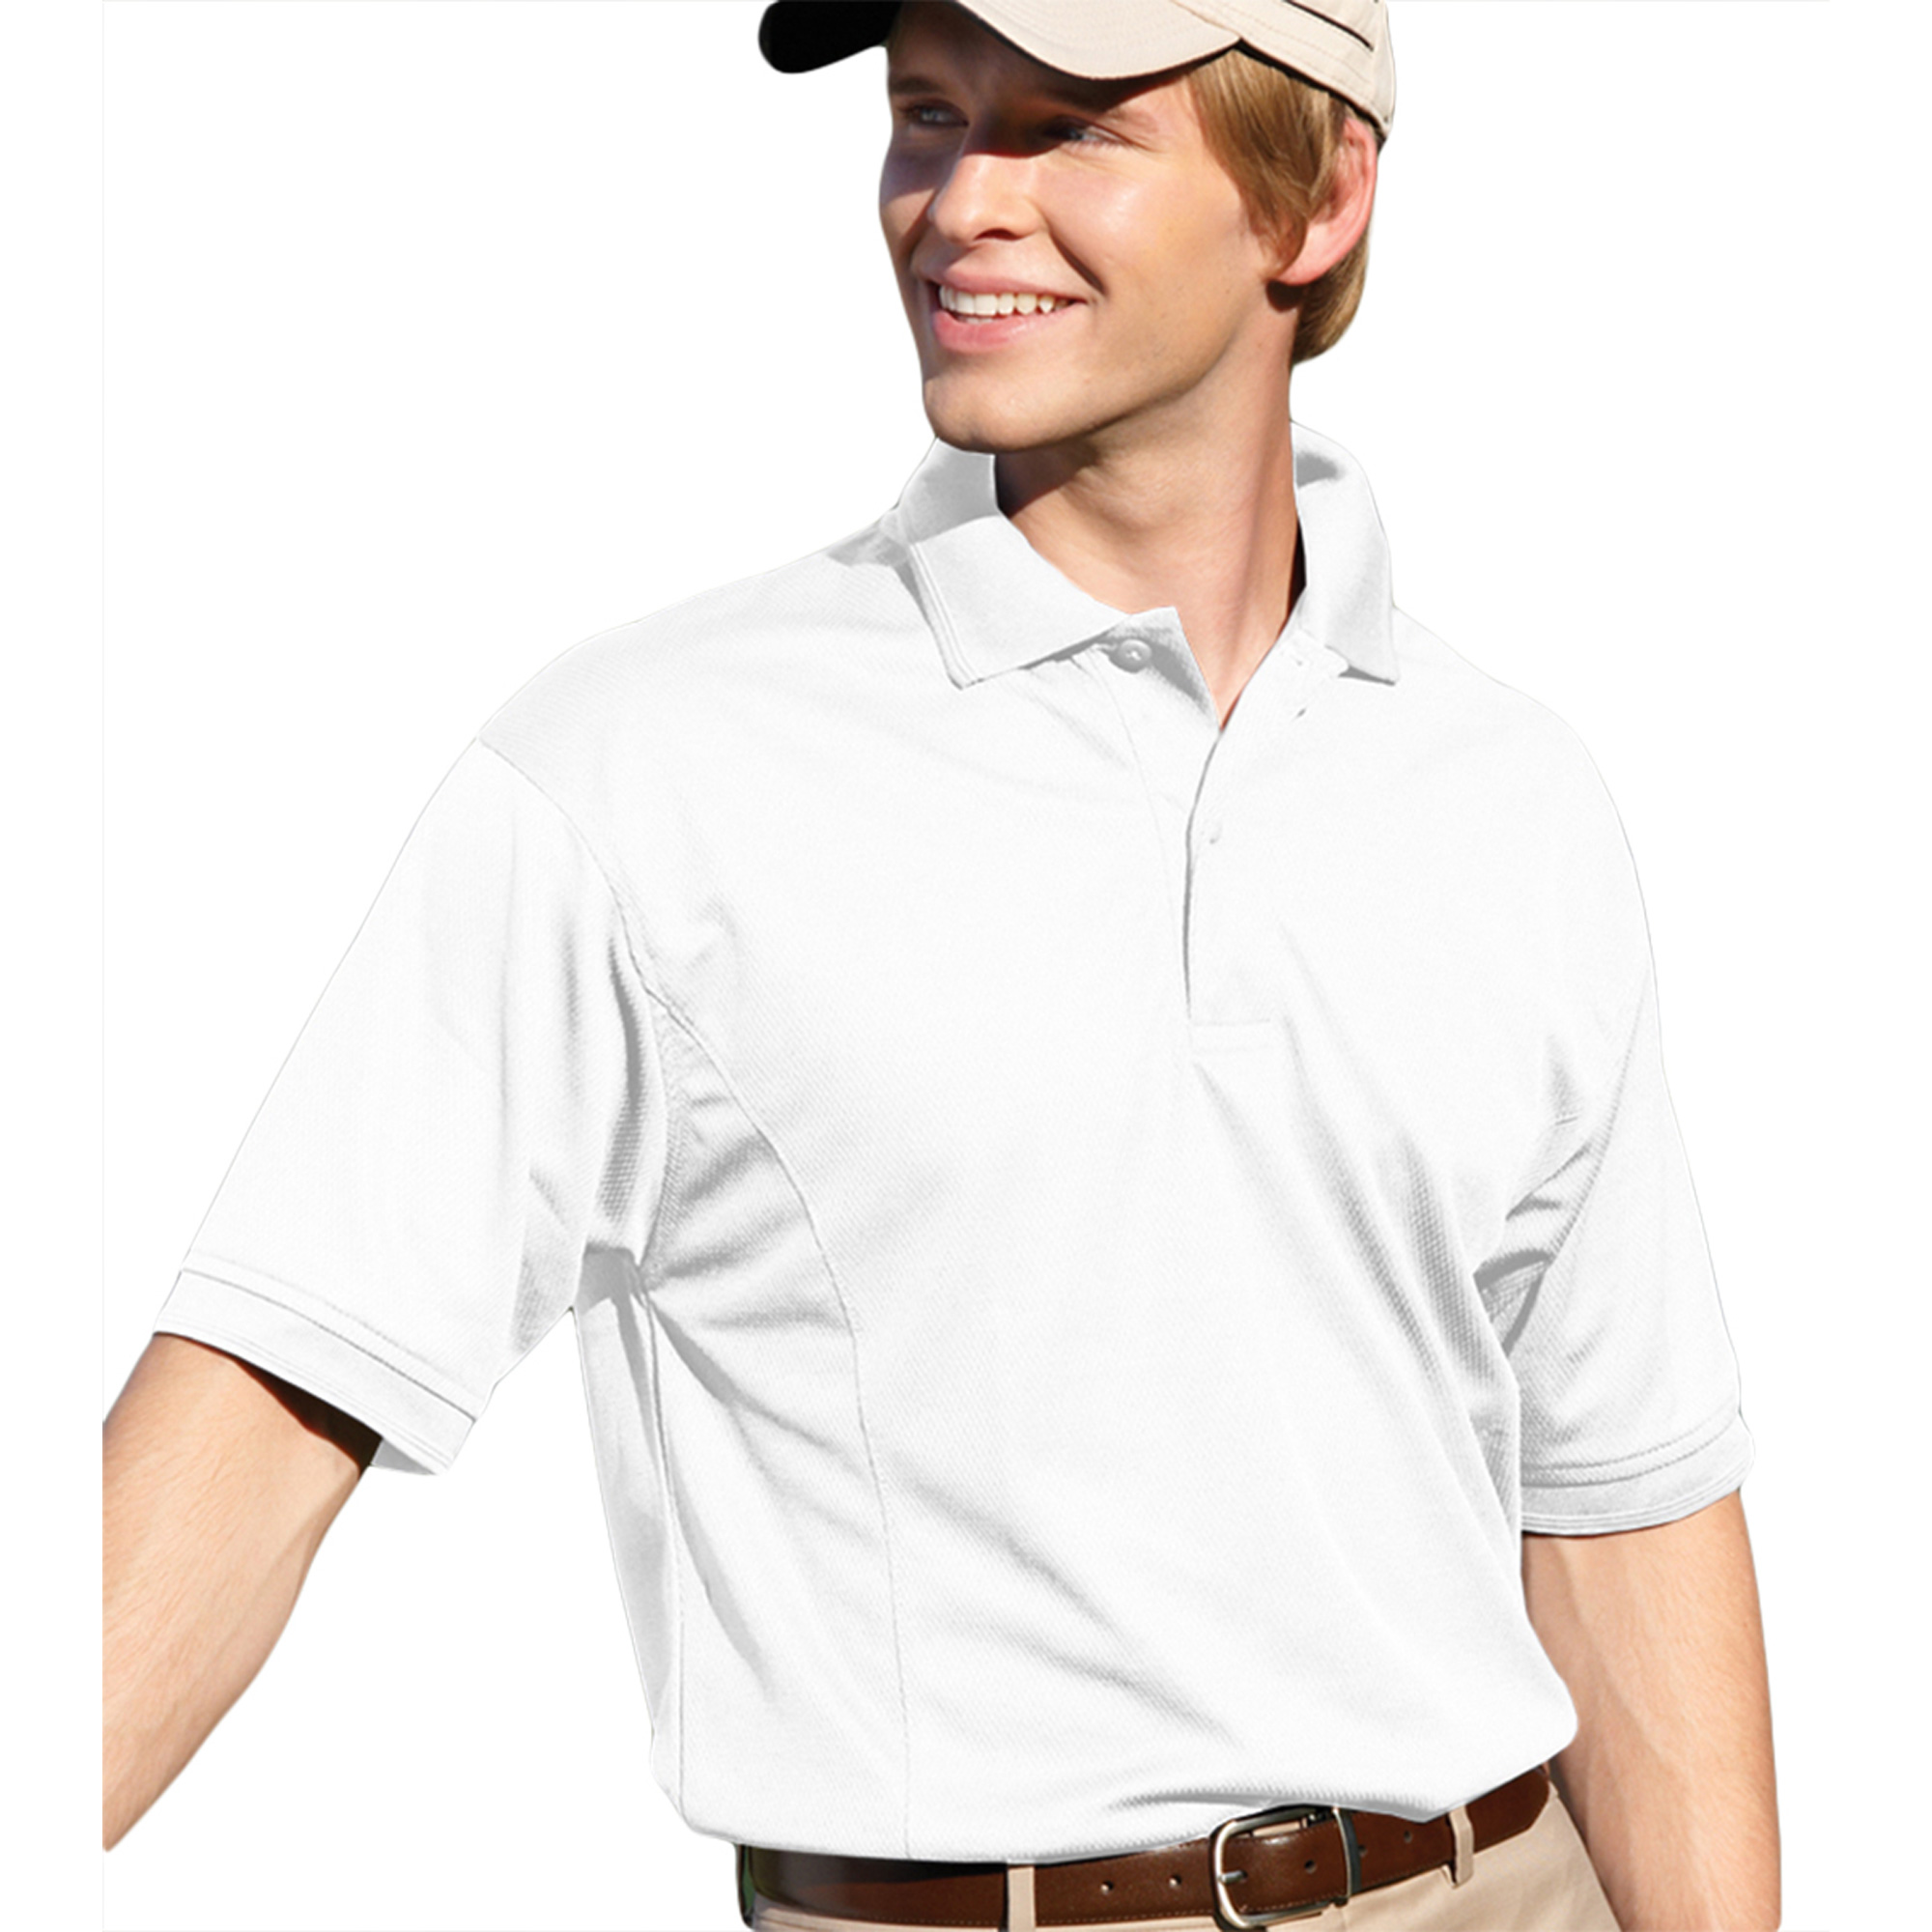 00820599181047 MENS PERFORMANCE GOLF SHIRT 2800 BLACK L